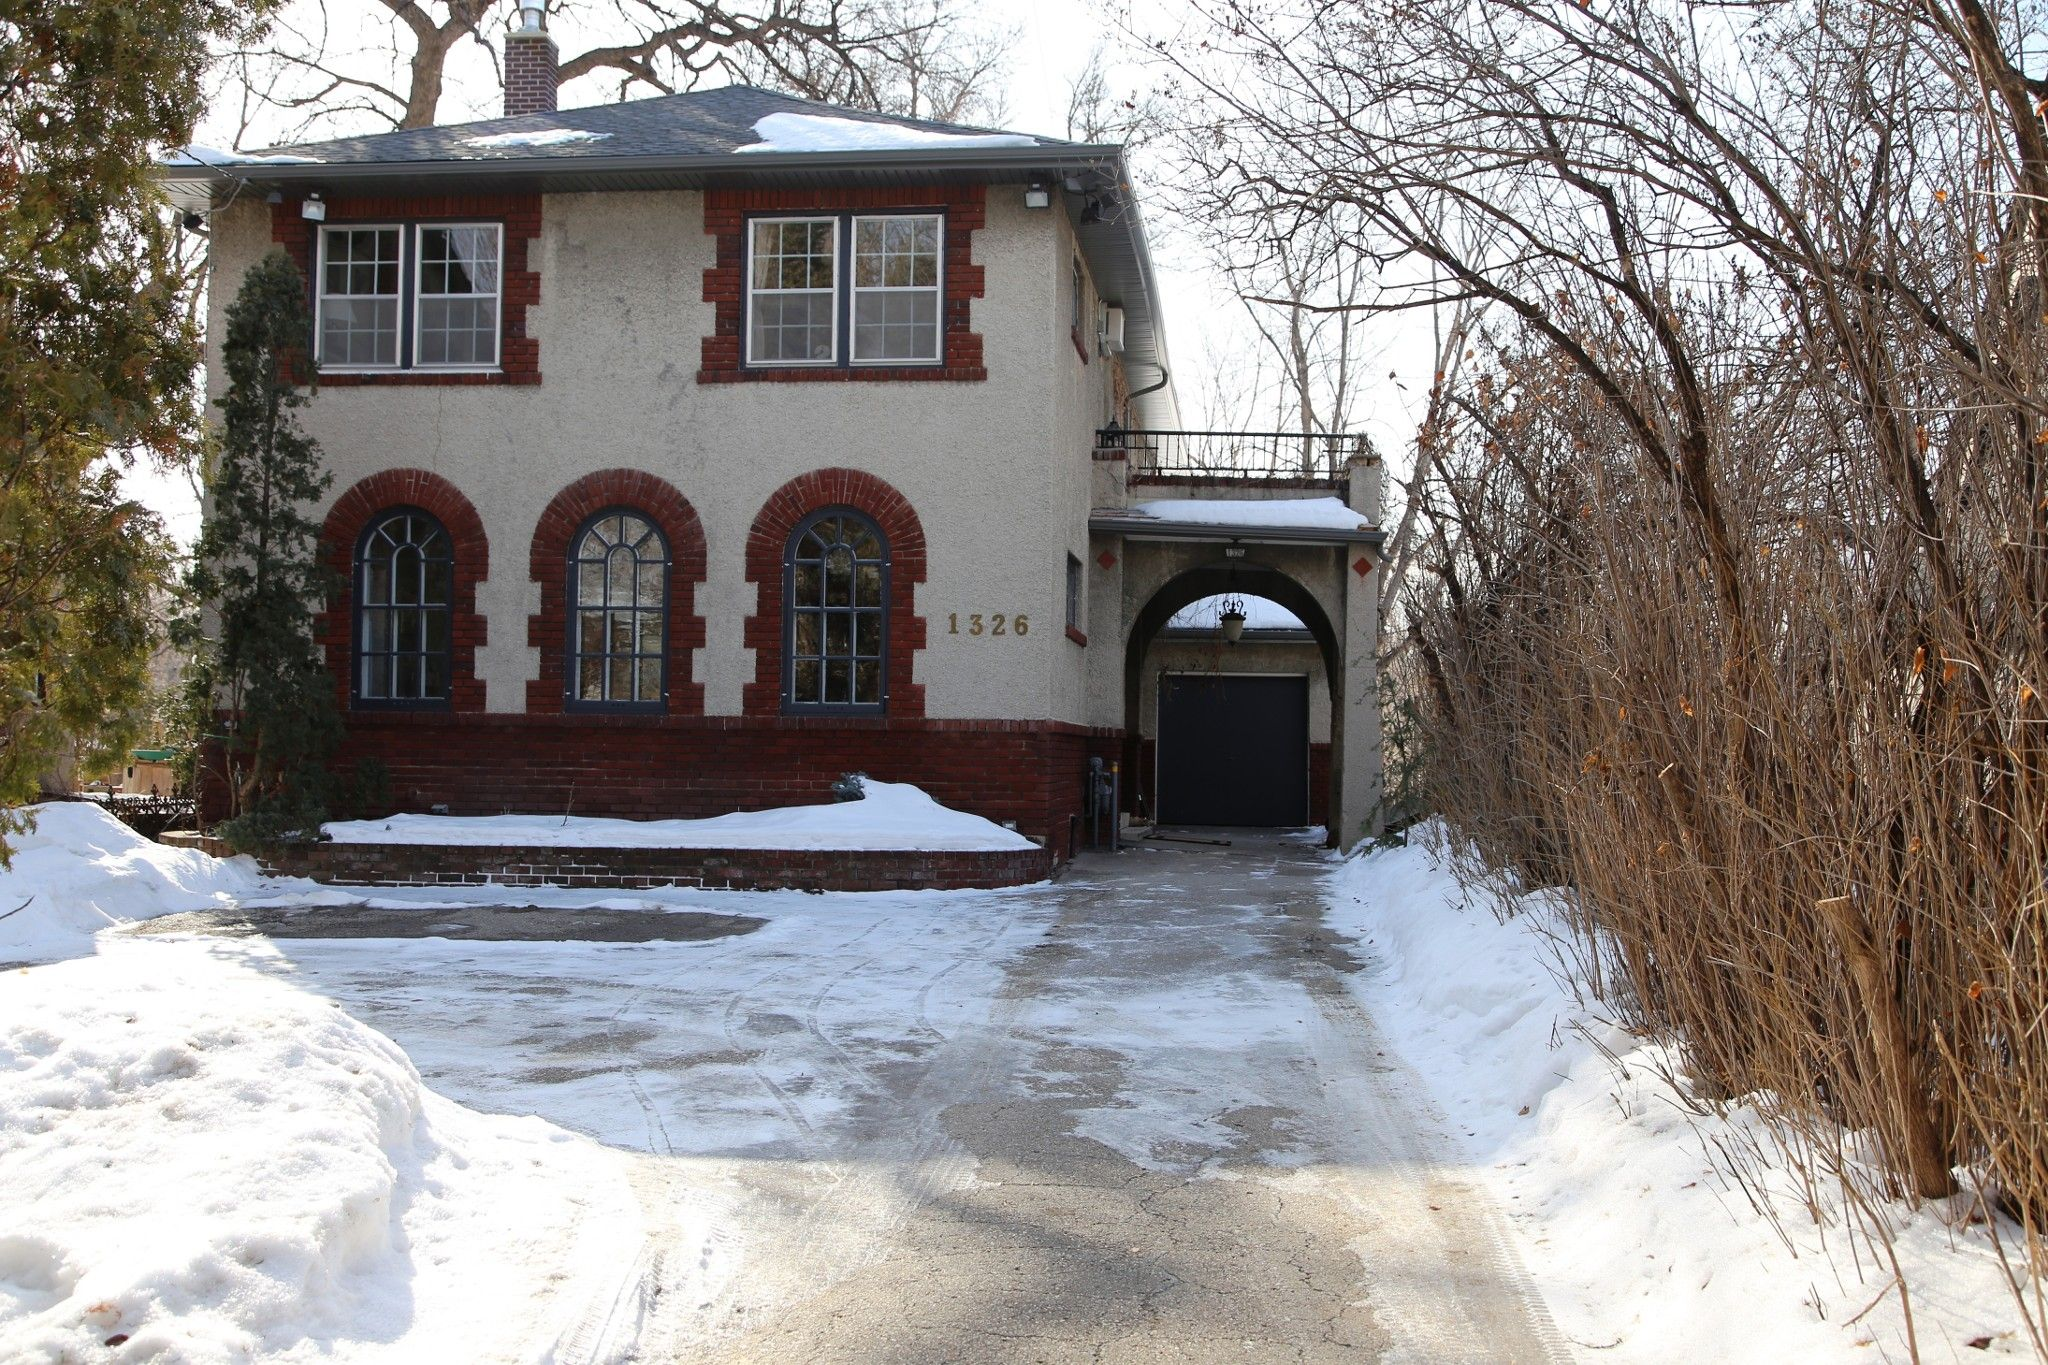 Welcome to 1326 Wolseley Ave on the River!